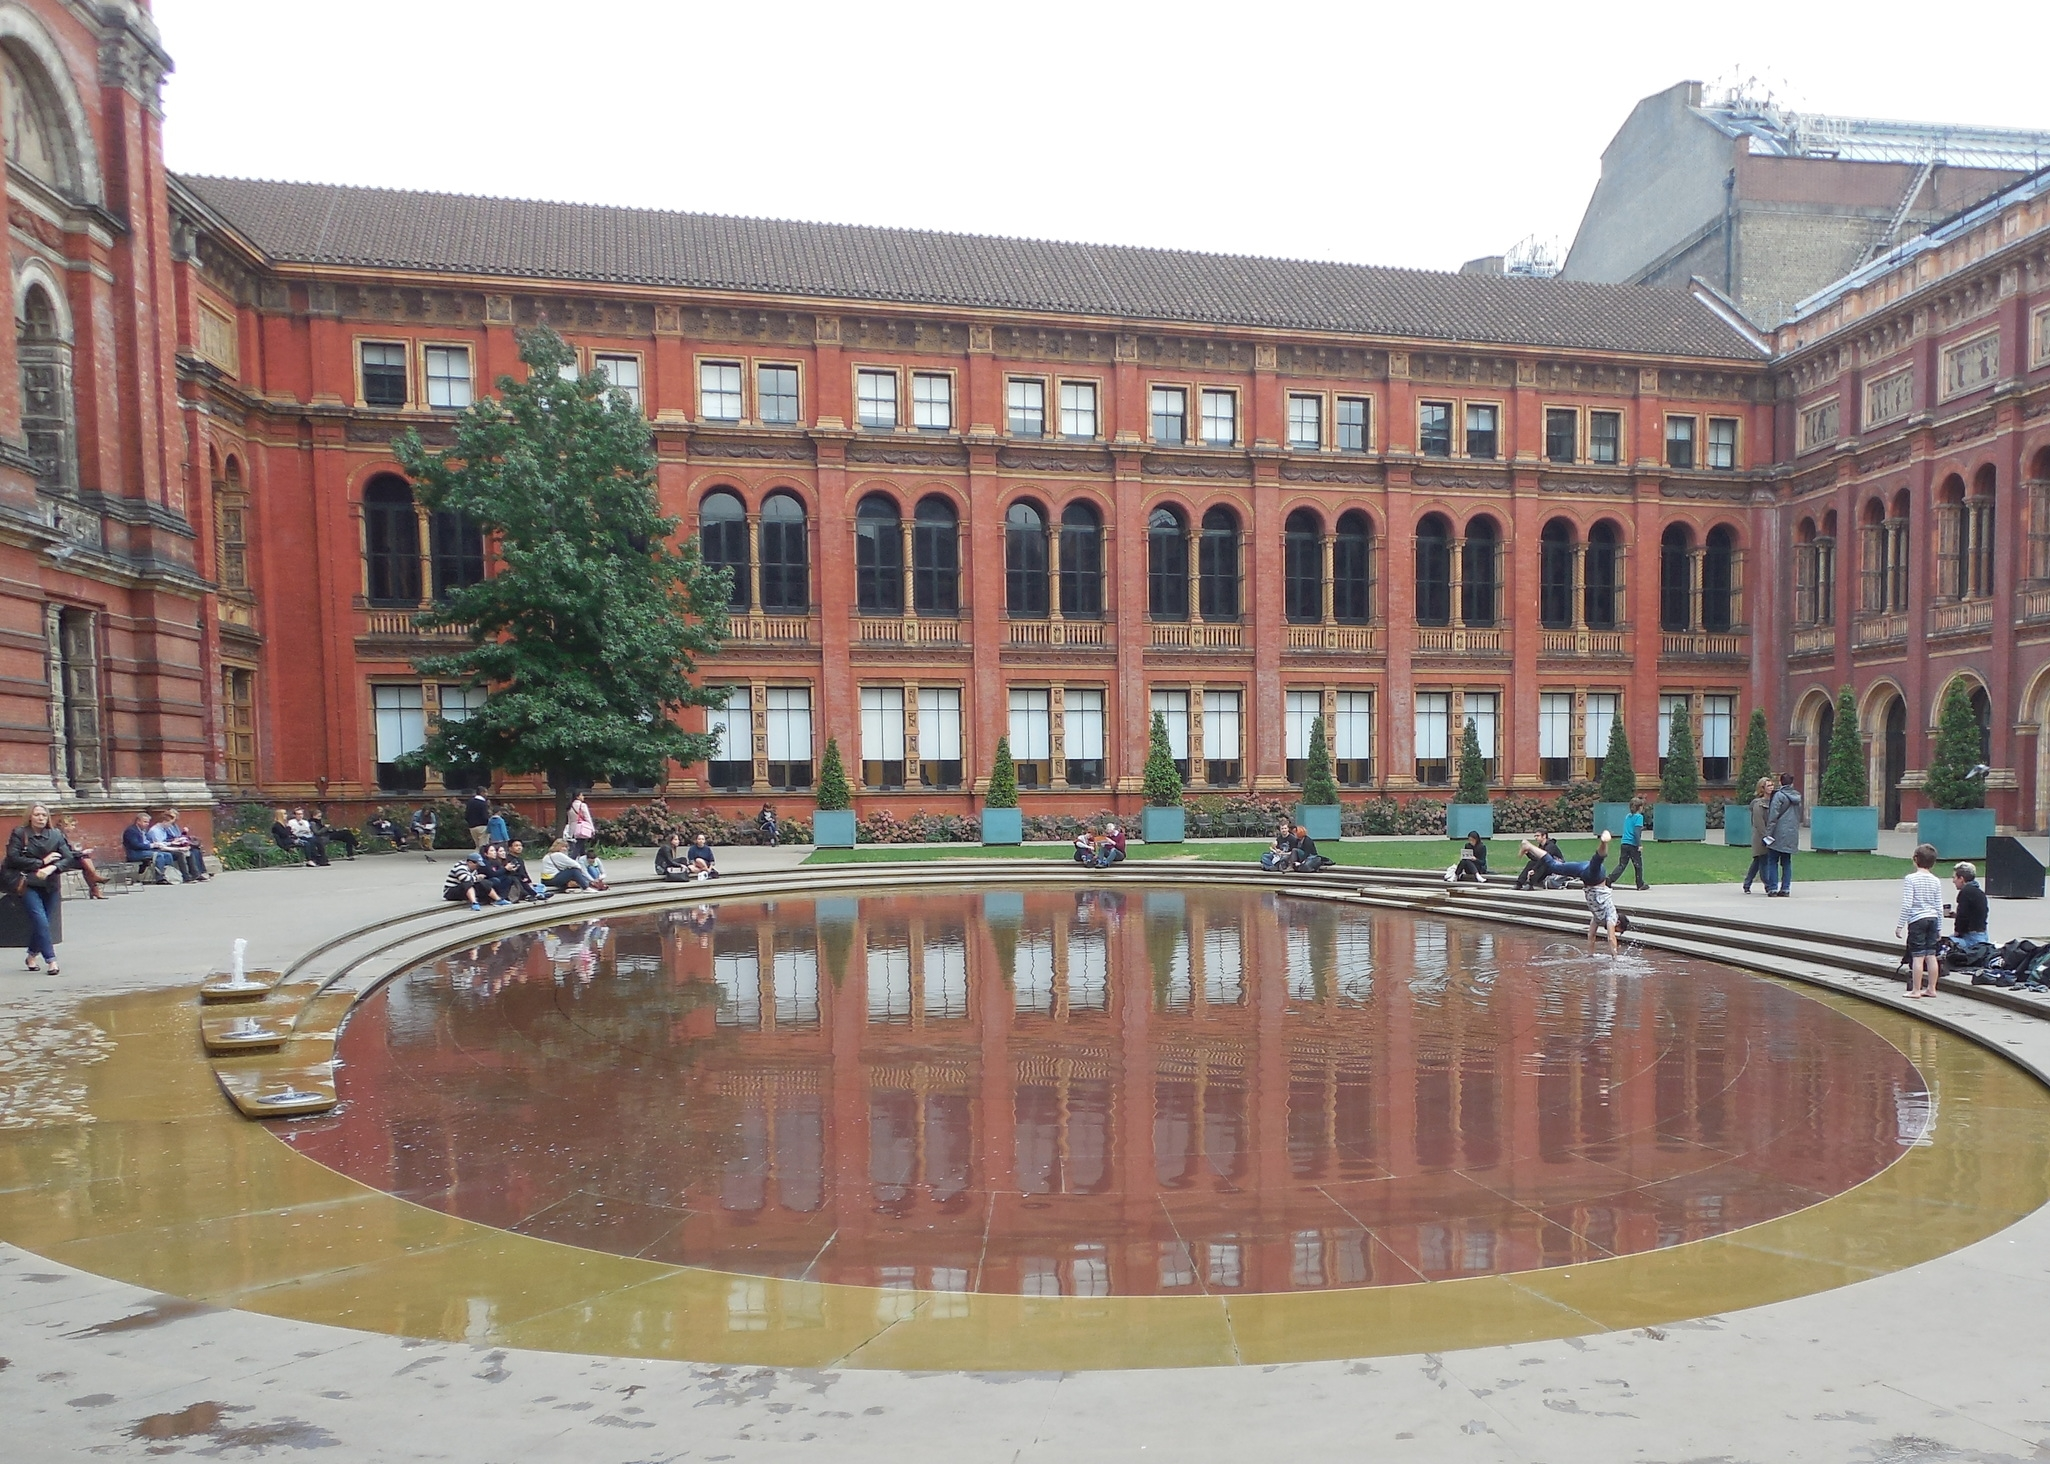 Courtyard reflecting pool at the V&A